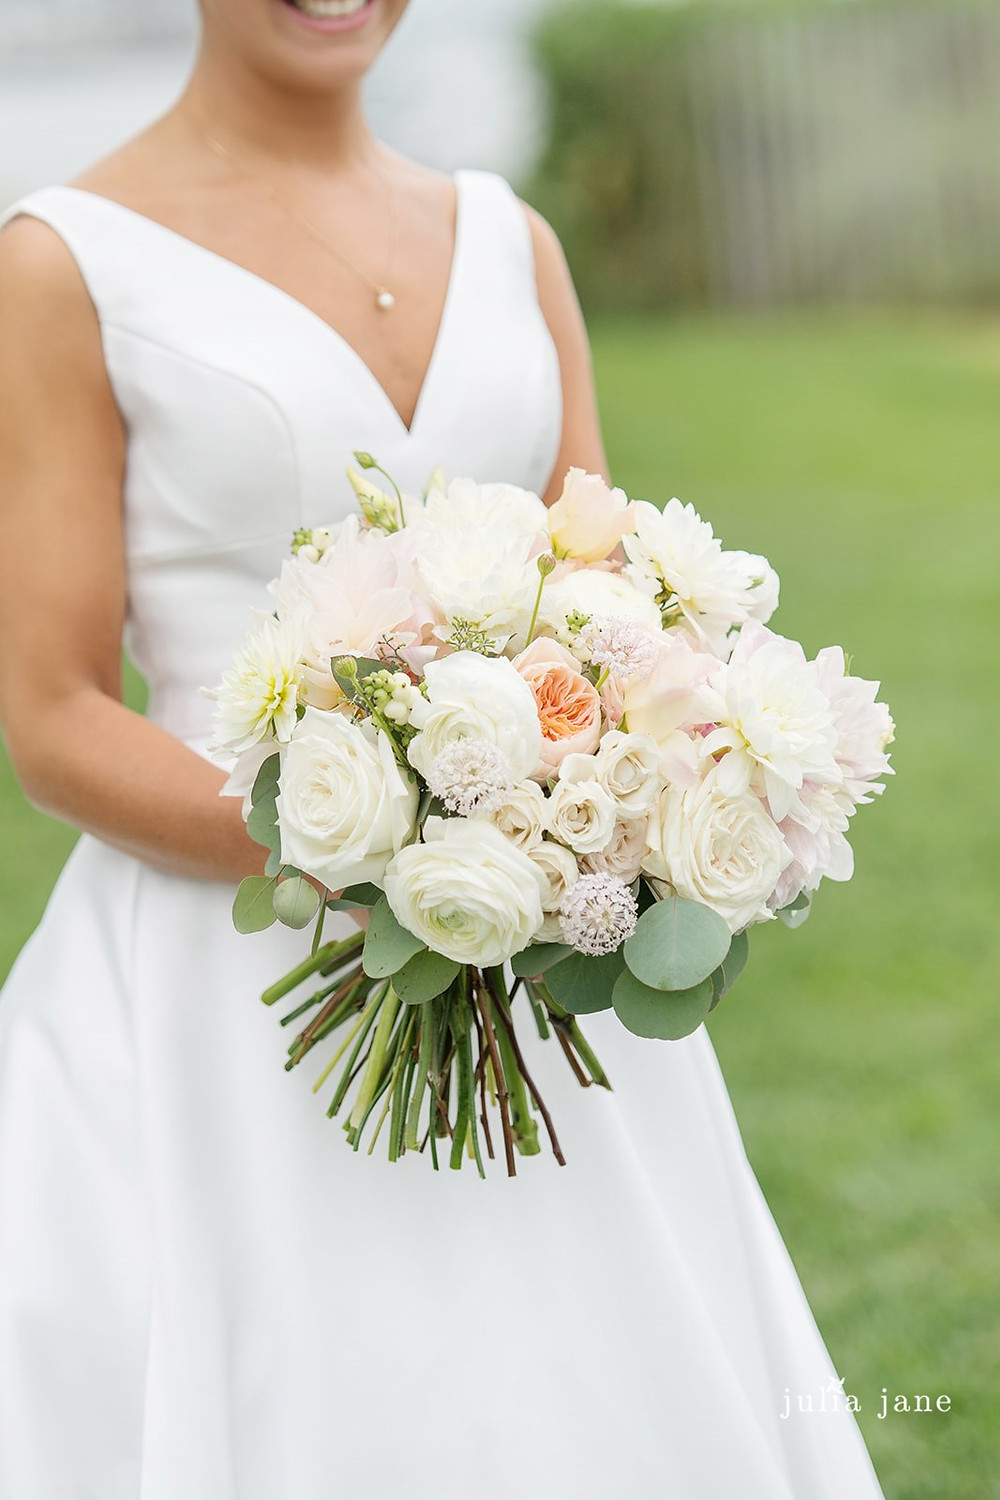 Bride's bouquet with Roses and Dahlias